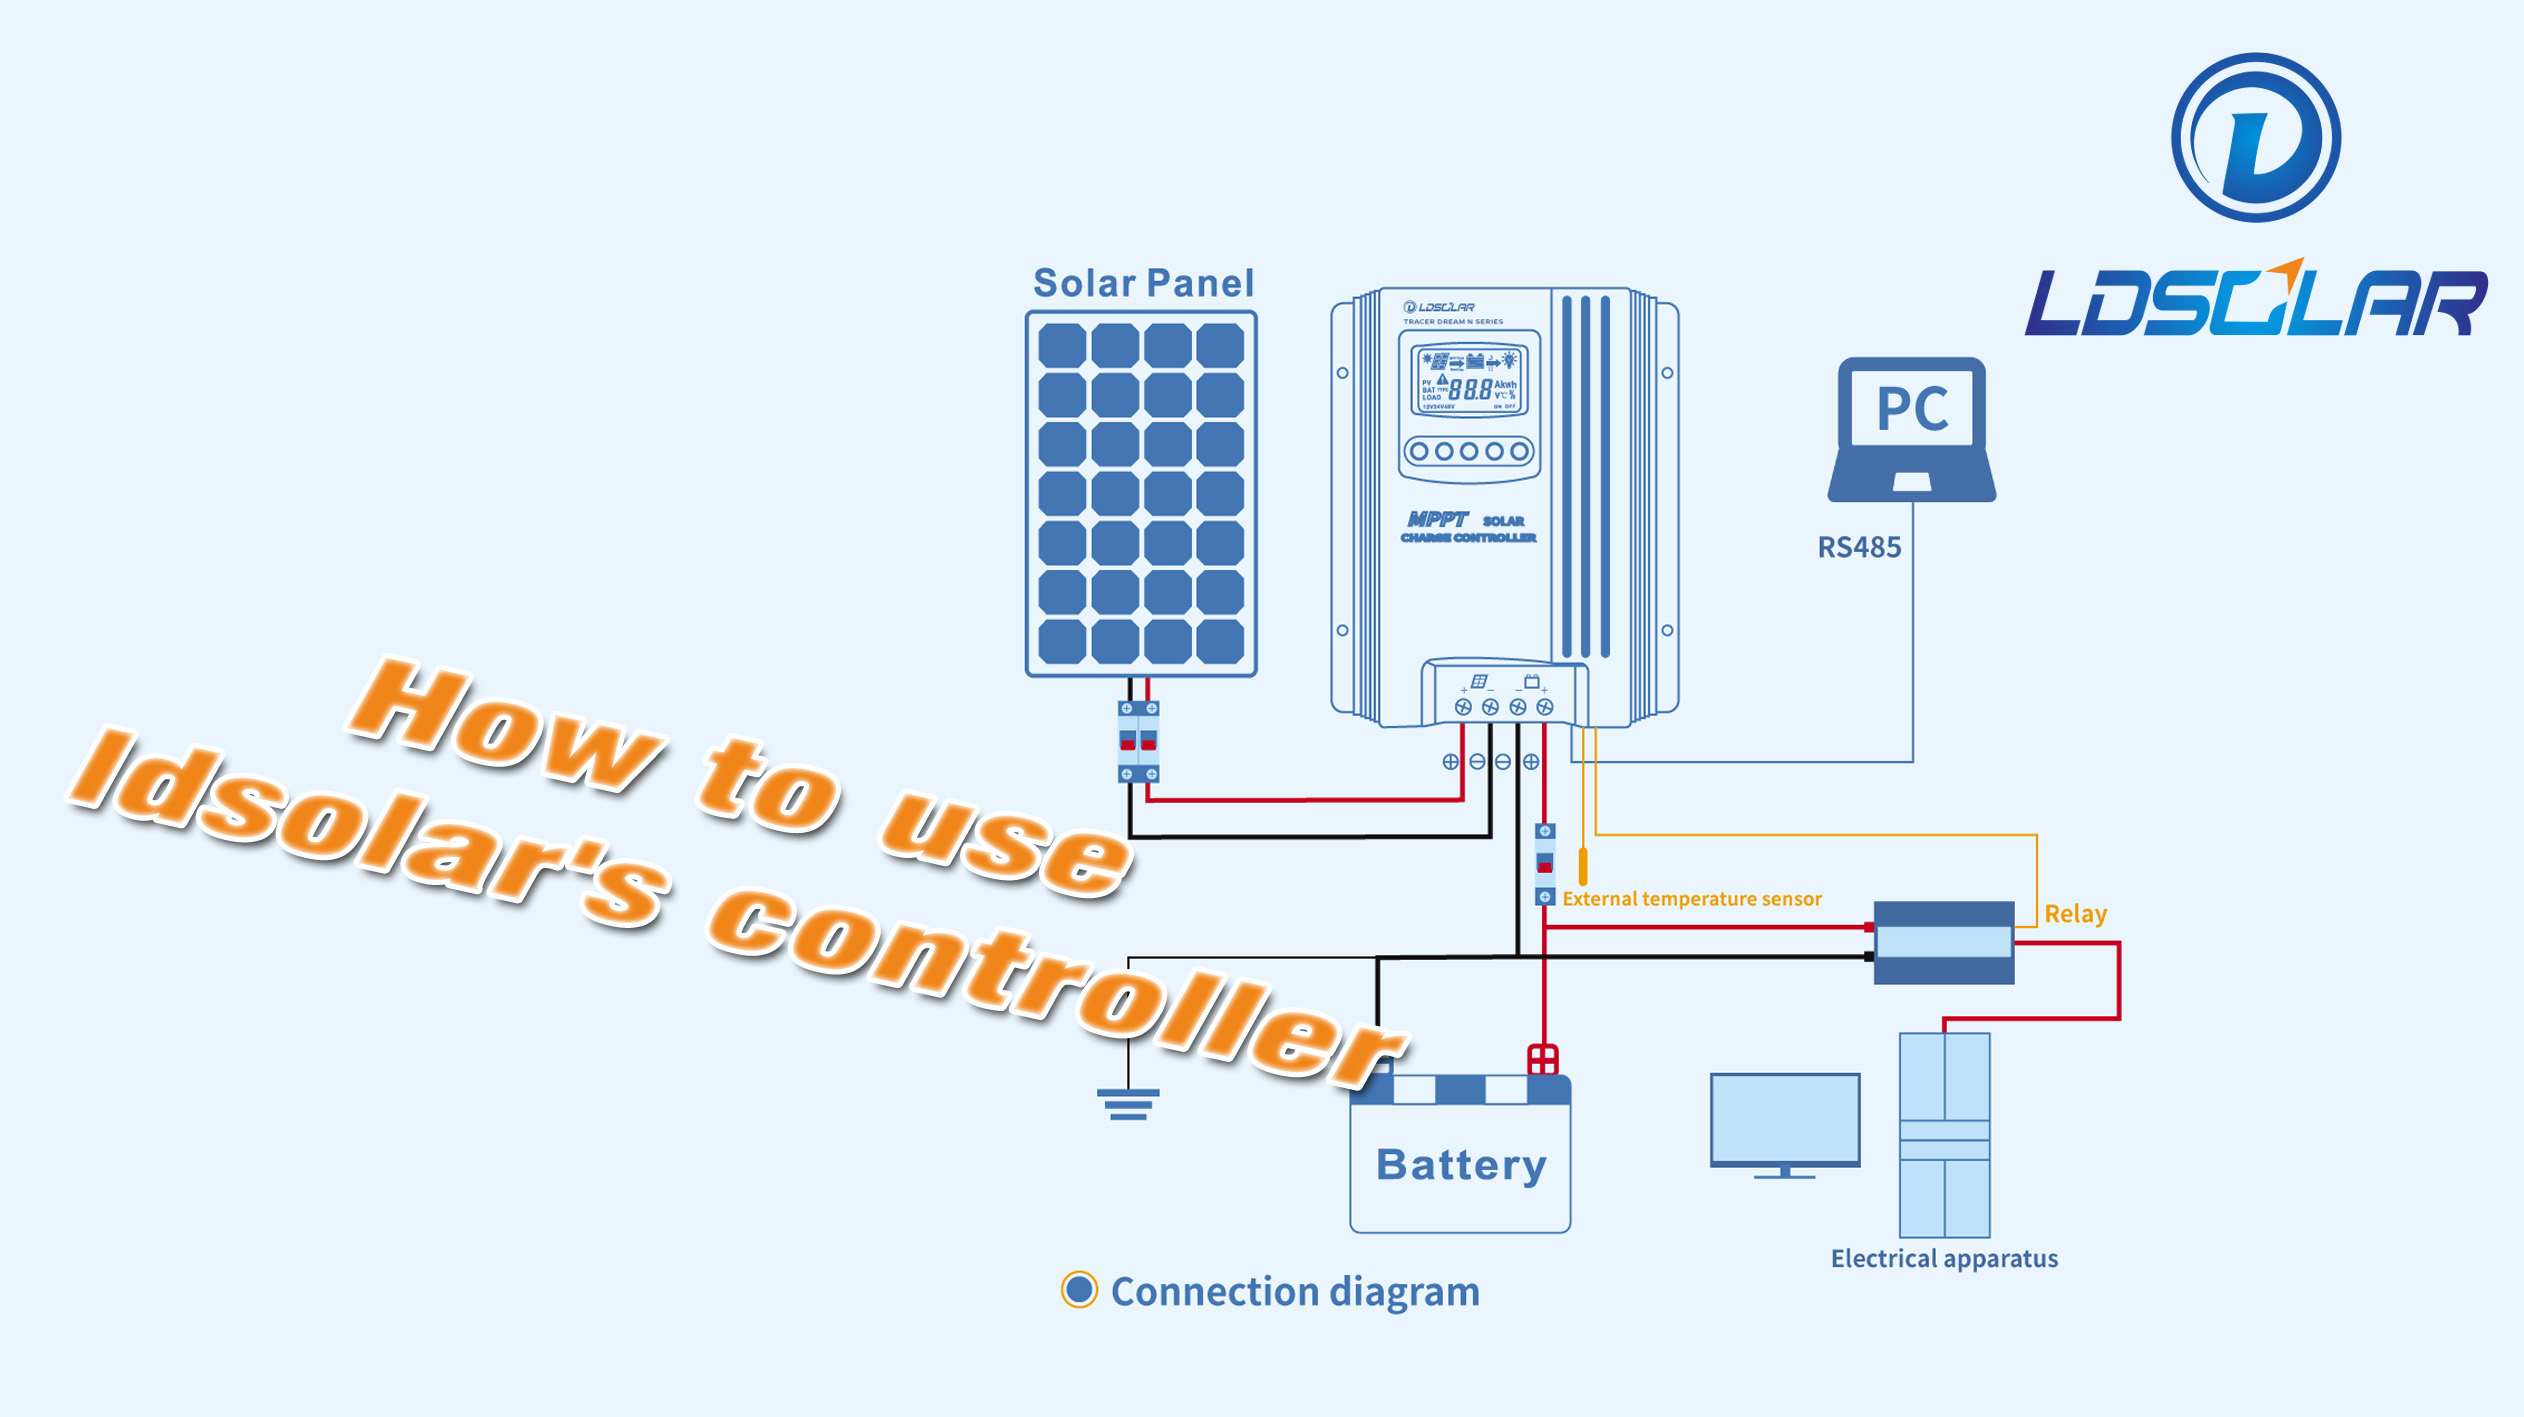 How to use ldsolar's controller